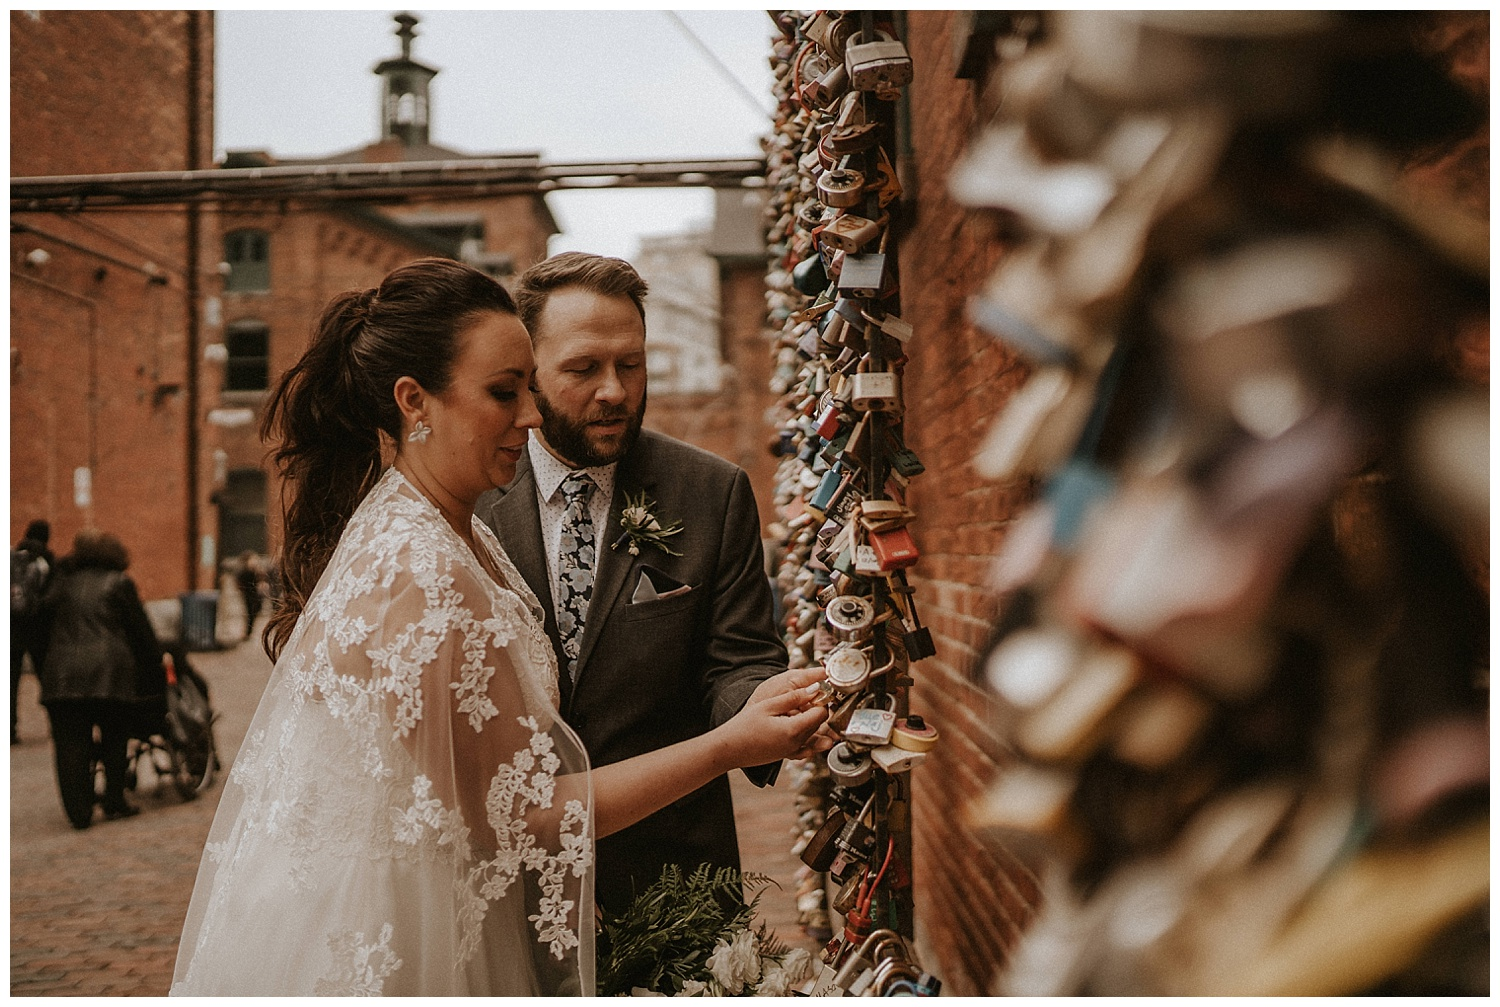 Katie Marie Photography | Archeo Wedding Arta Gallery Wedding | Distillery District Wedding | Toronto Wedding Photographer | Hamilton Toronto Ontario Wedding Photographer |_0045.jpg